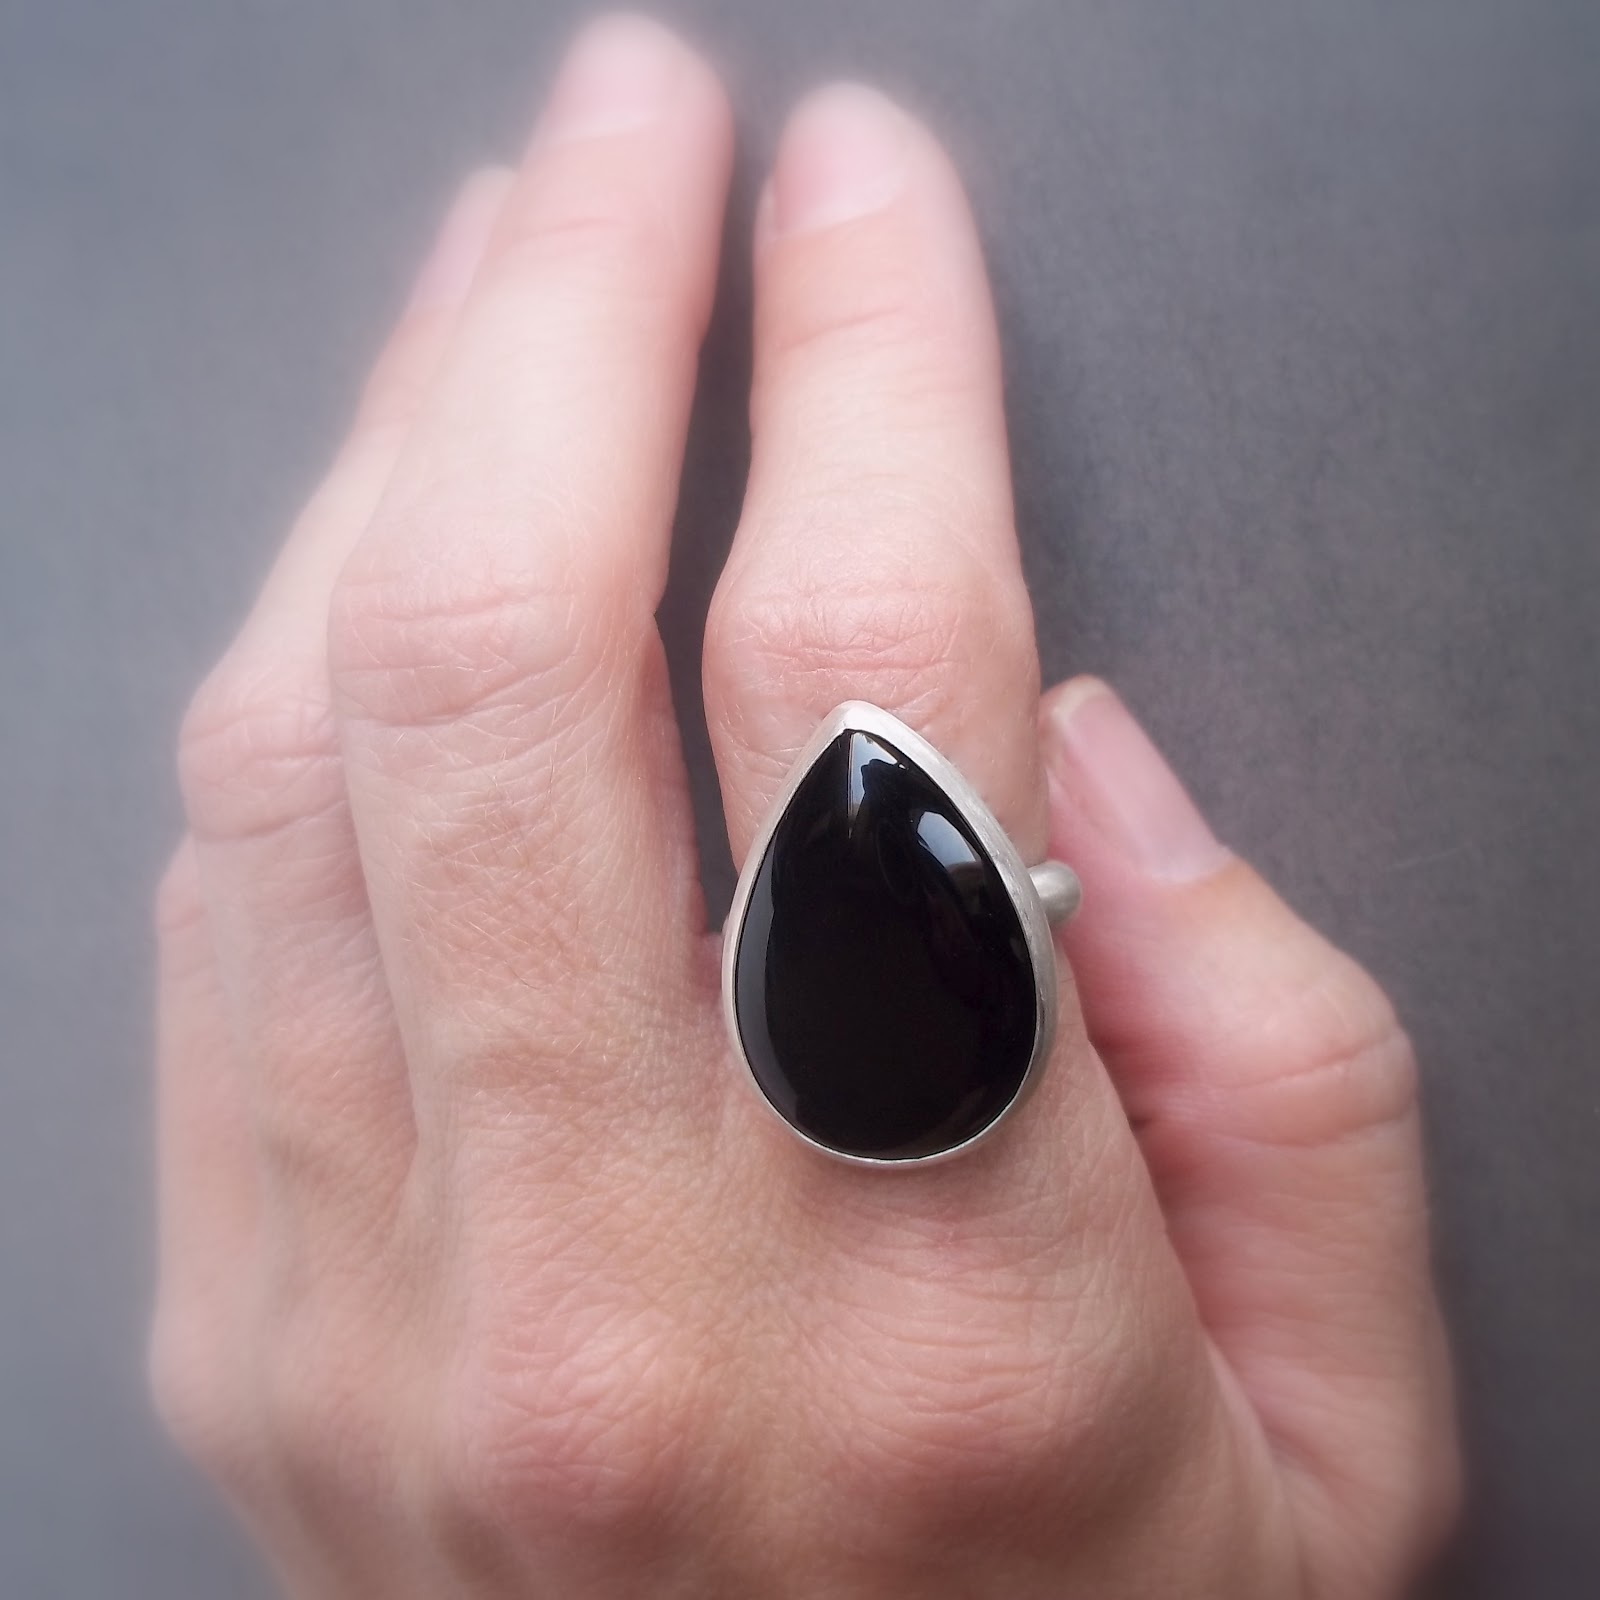 https://www.etsy.com/listing/104724426/black-onyx-huge-no-more-tears-ring?ref=shop_home_active_6